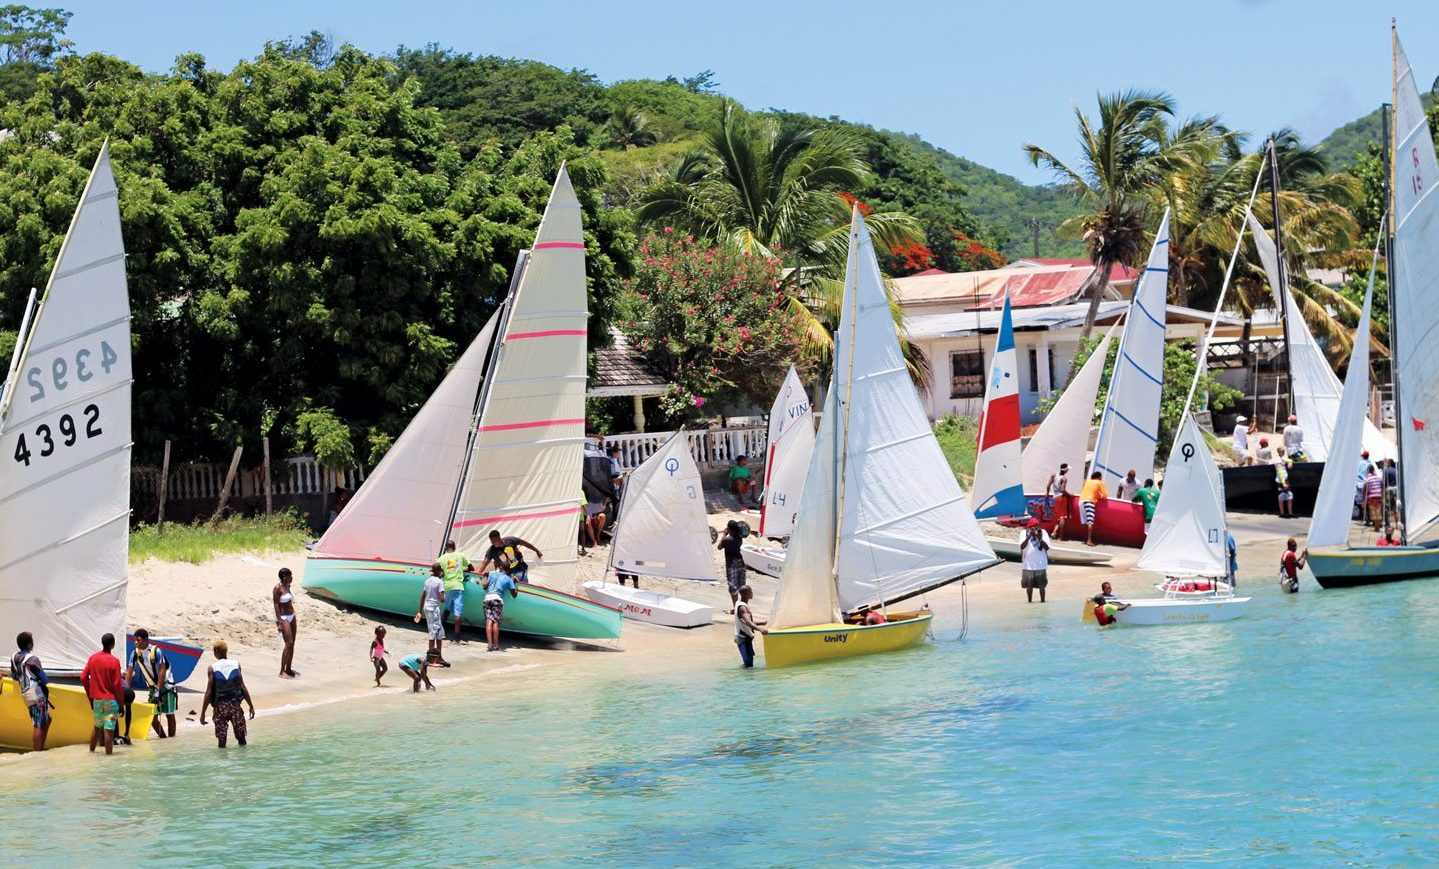 Beach action. File photo courtesy of Grenada Tourism Authority